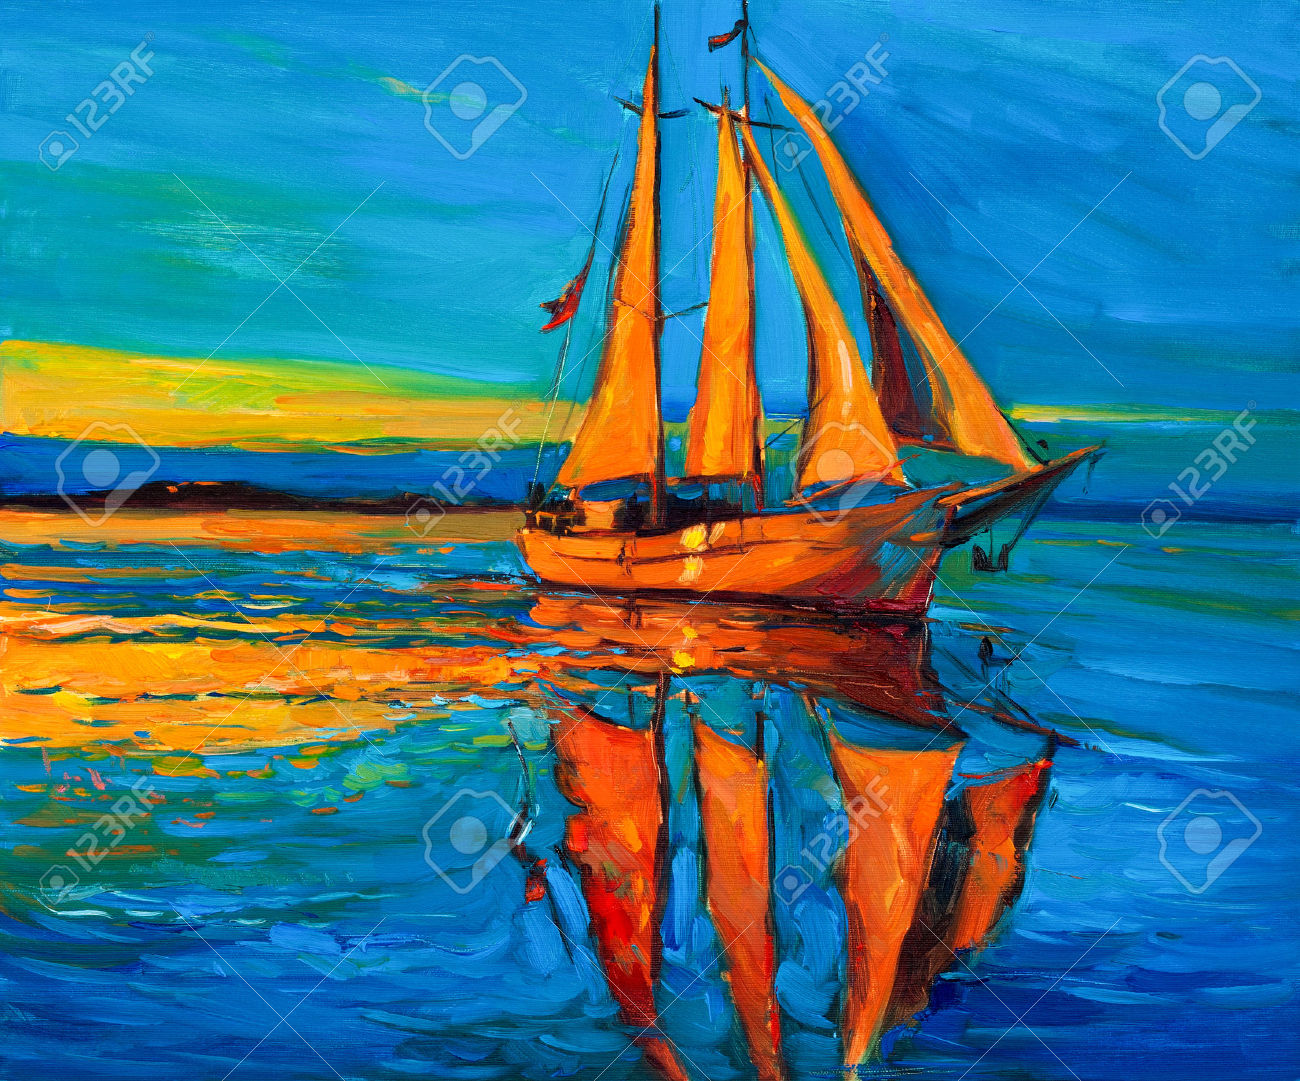 Oil Painting clipart #4, Download drawings